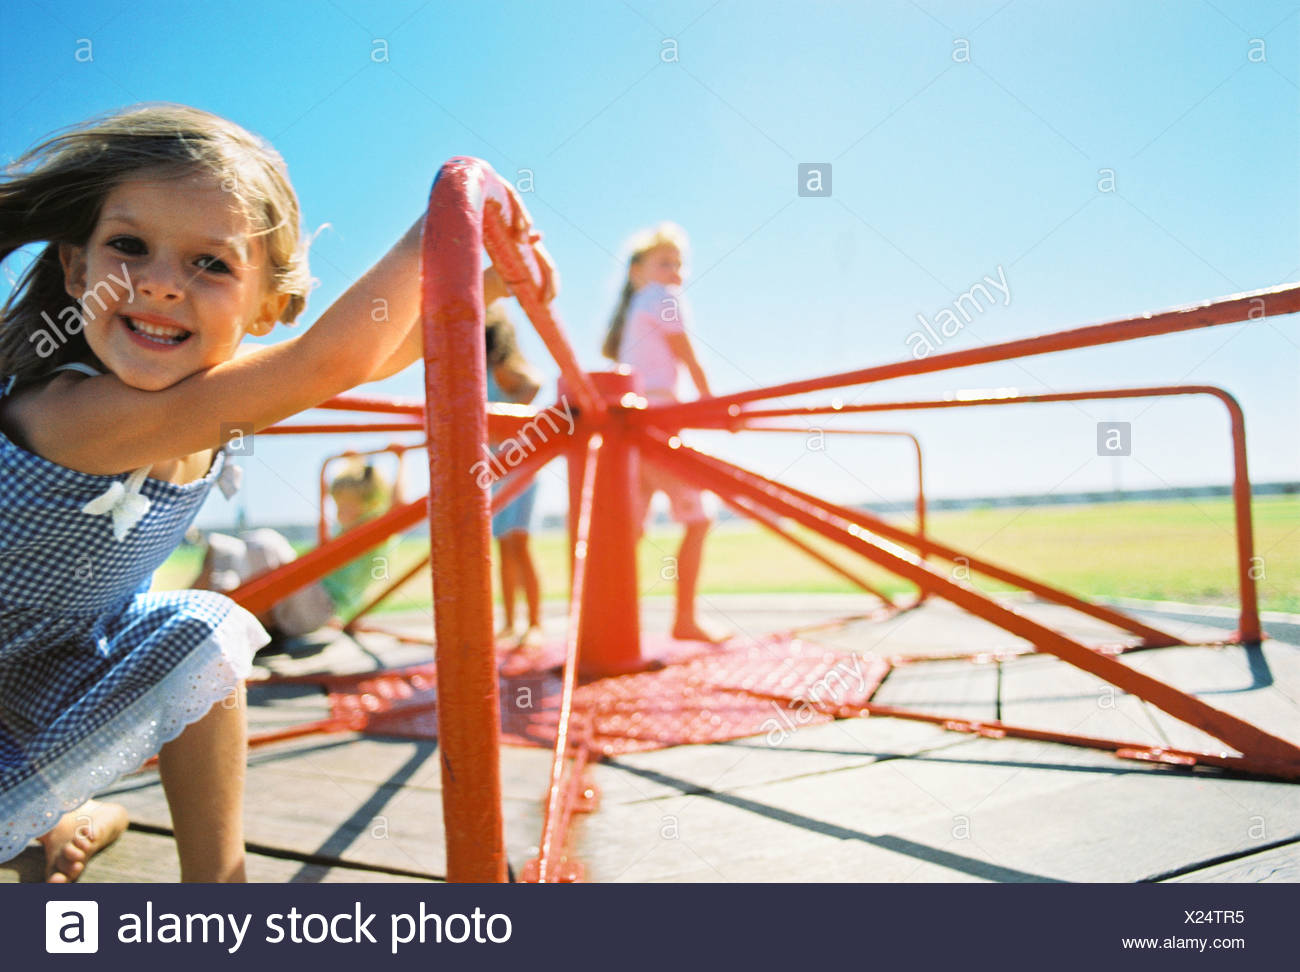 Children riding on playground merry-go-round - Stock Image